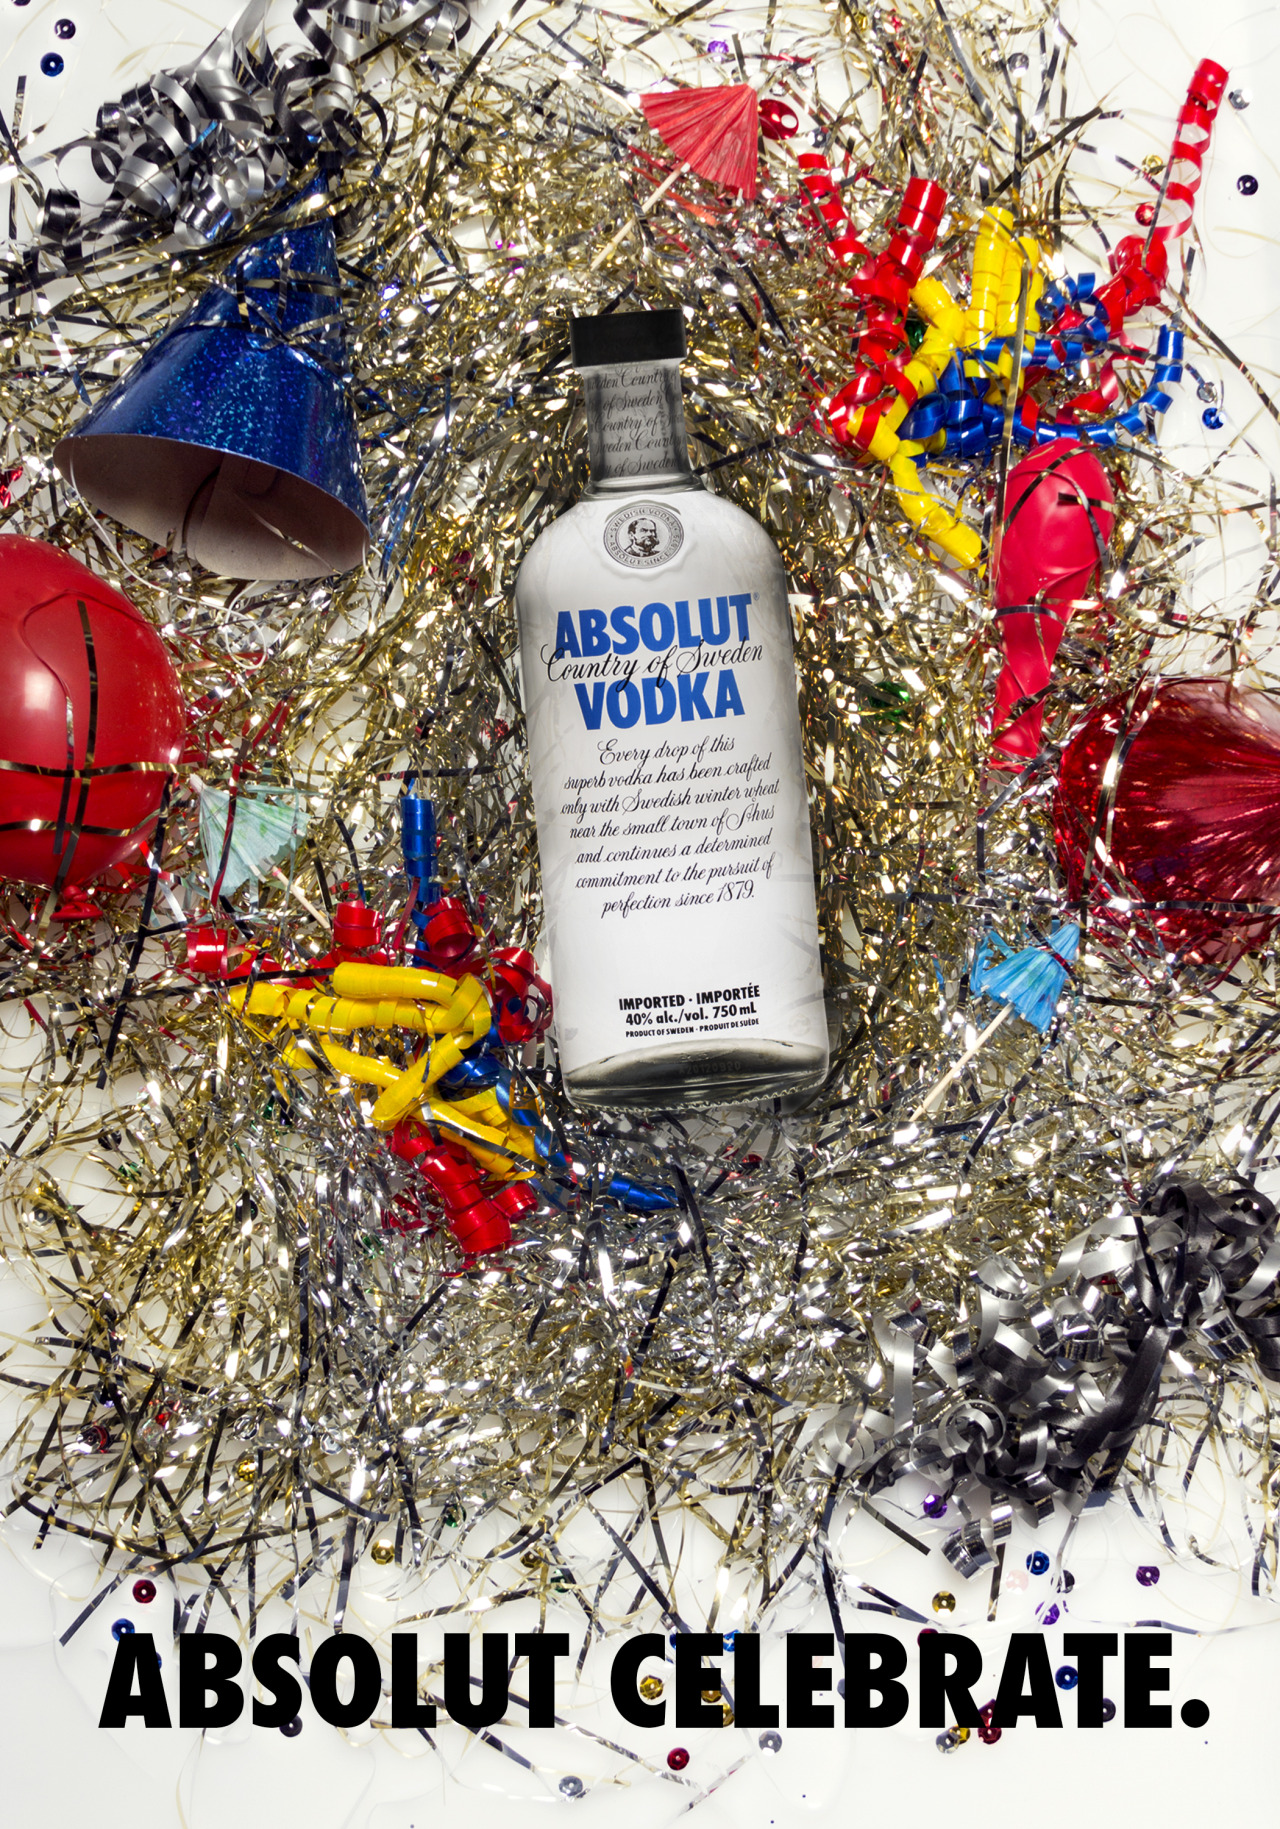 Absolut ad - school assignment